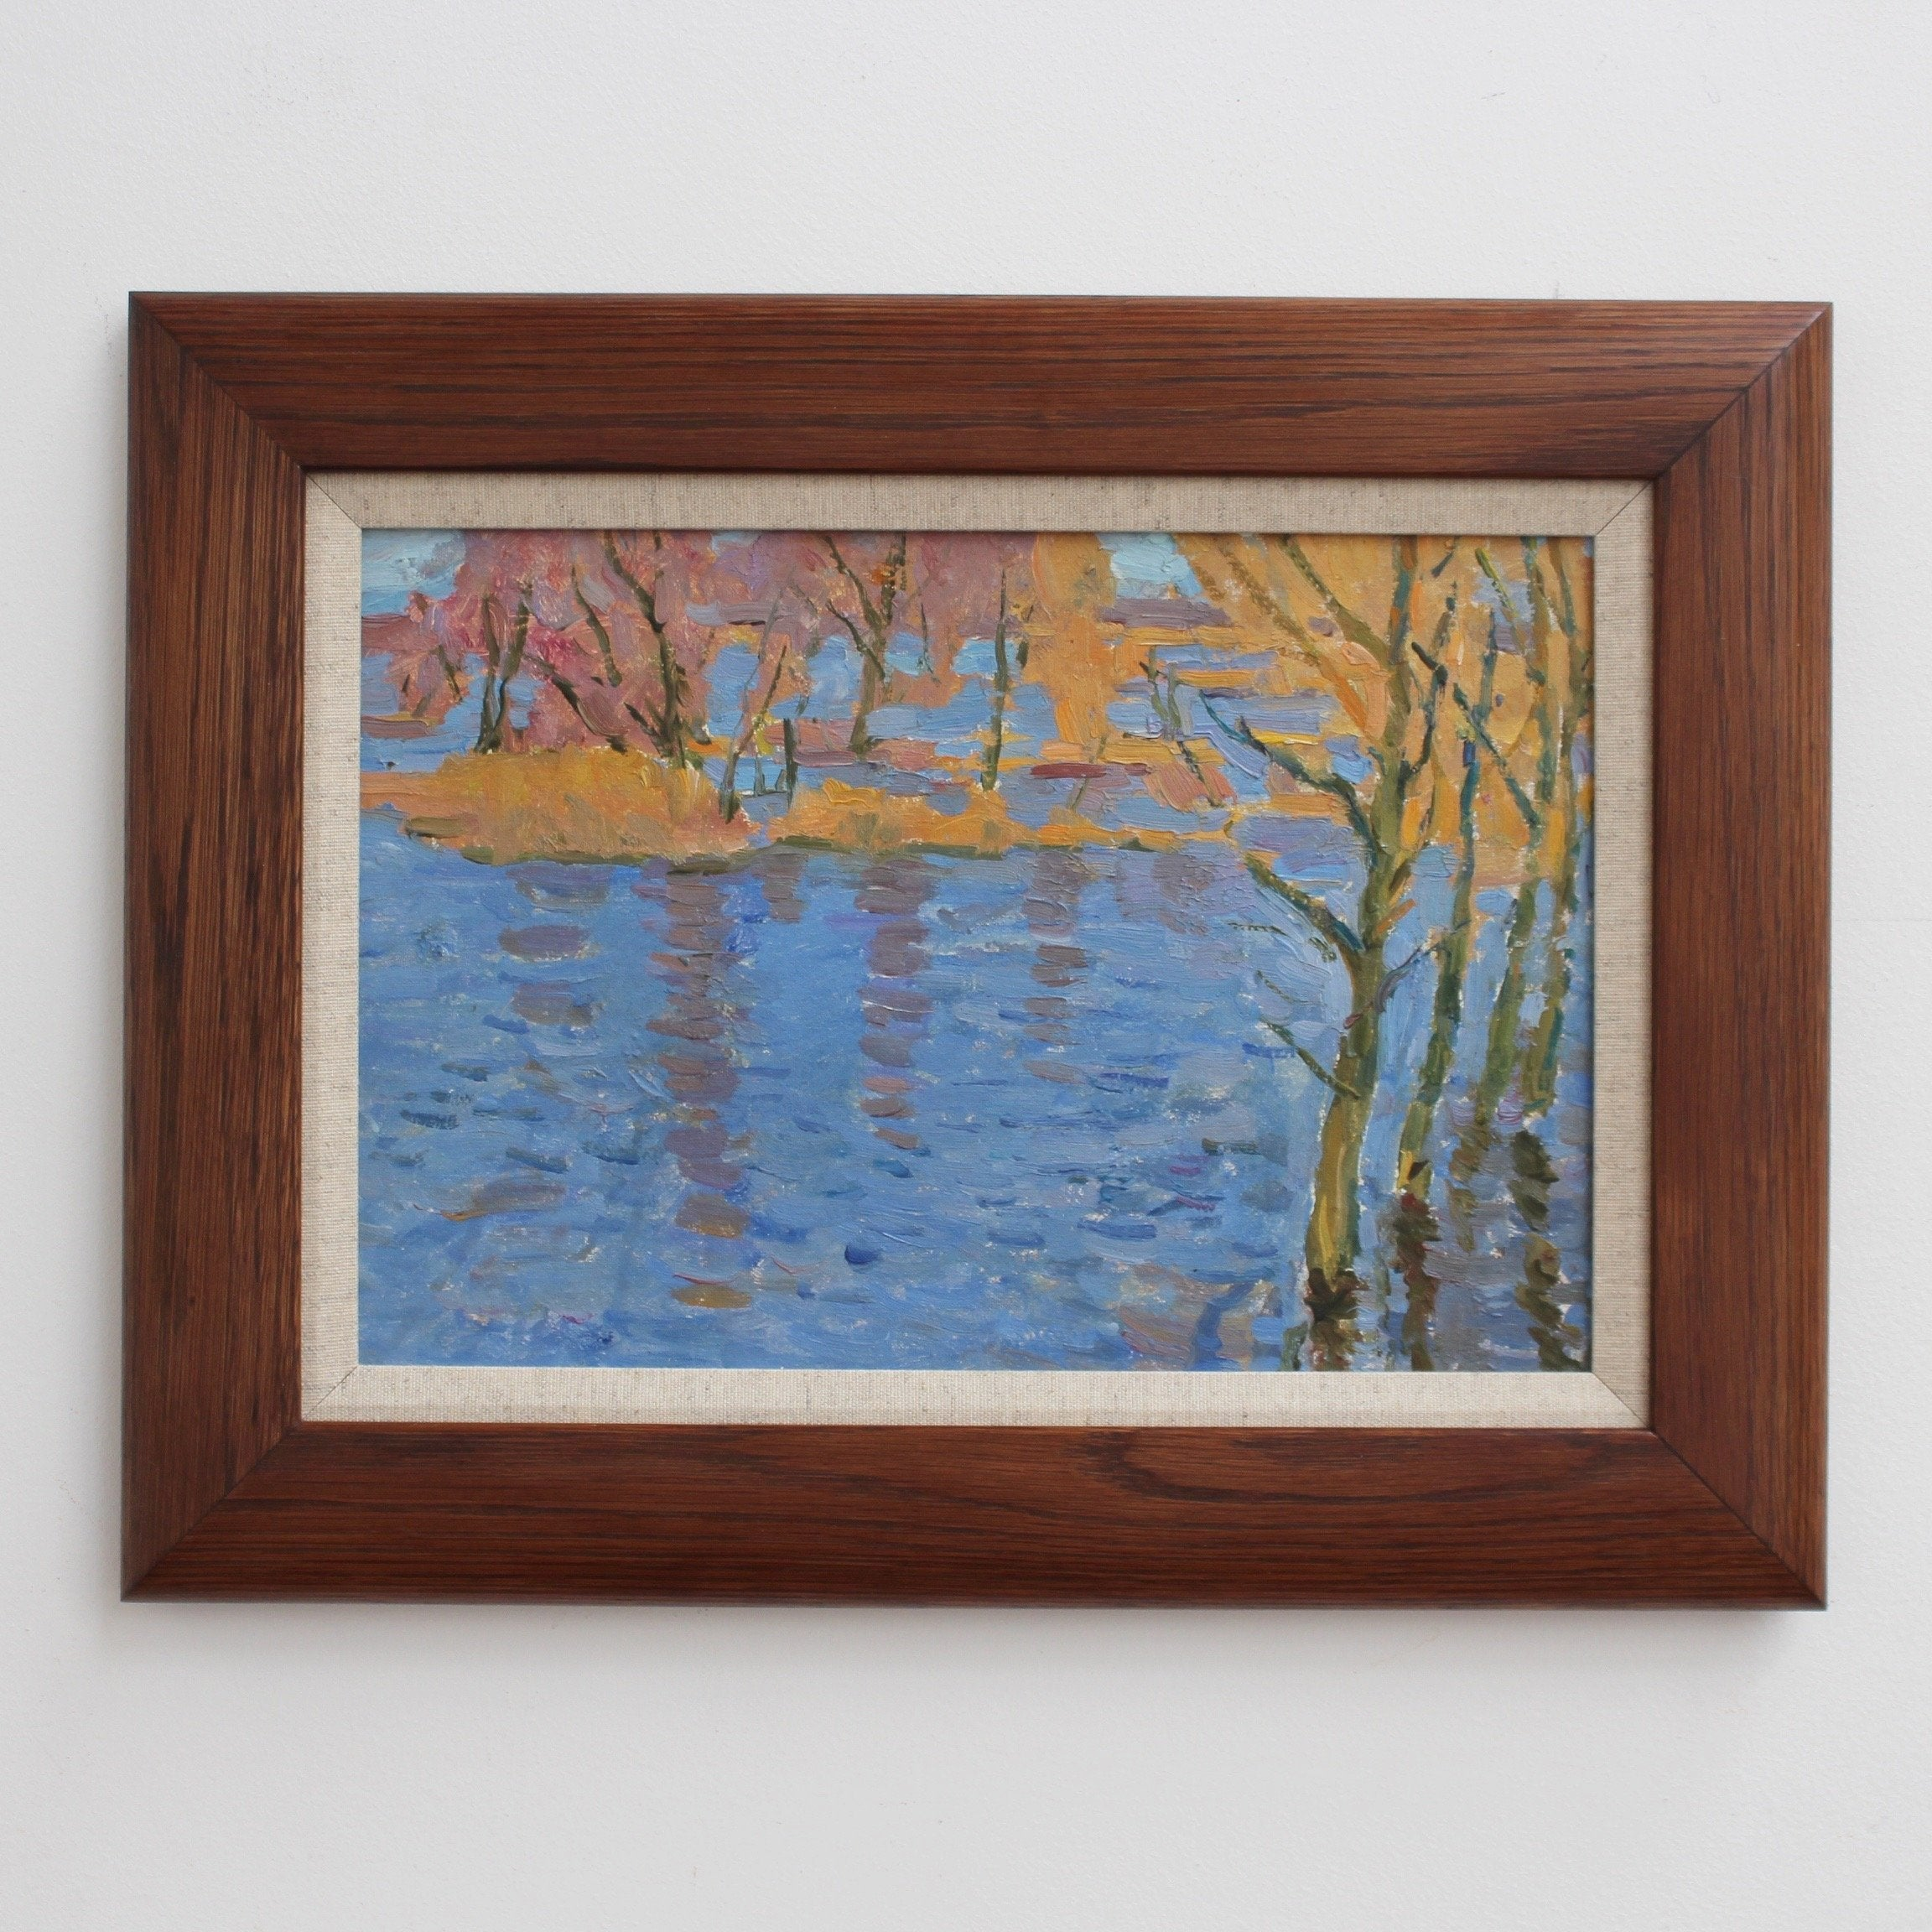 'Autumnal Lake' by Unknown (Circa 1960s)